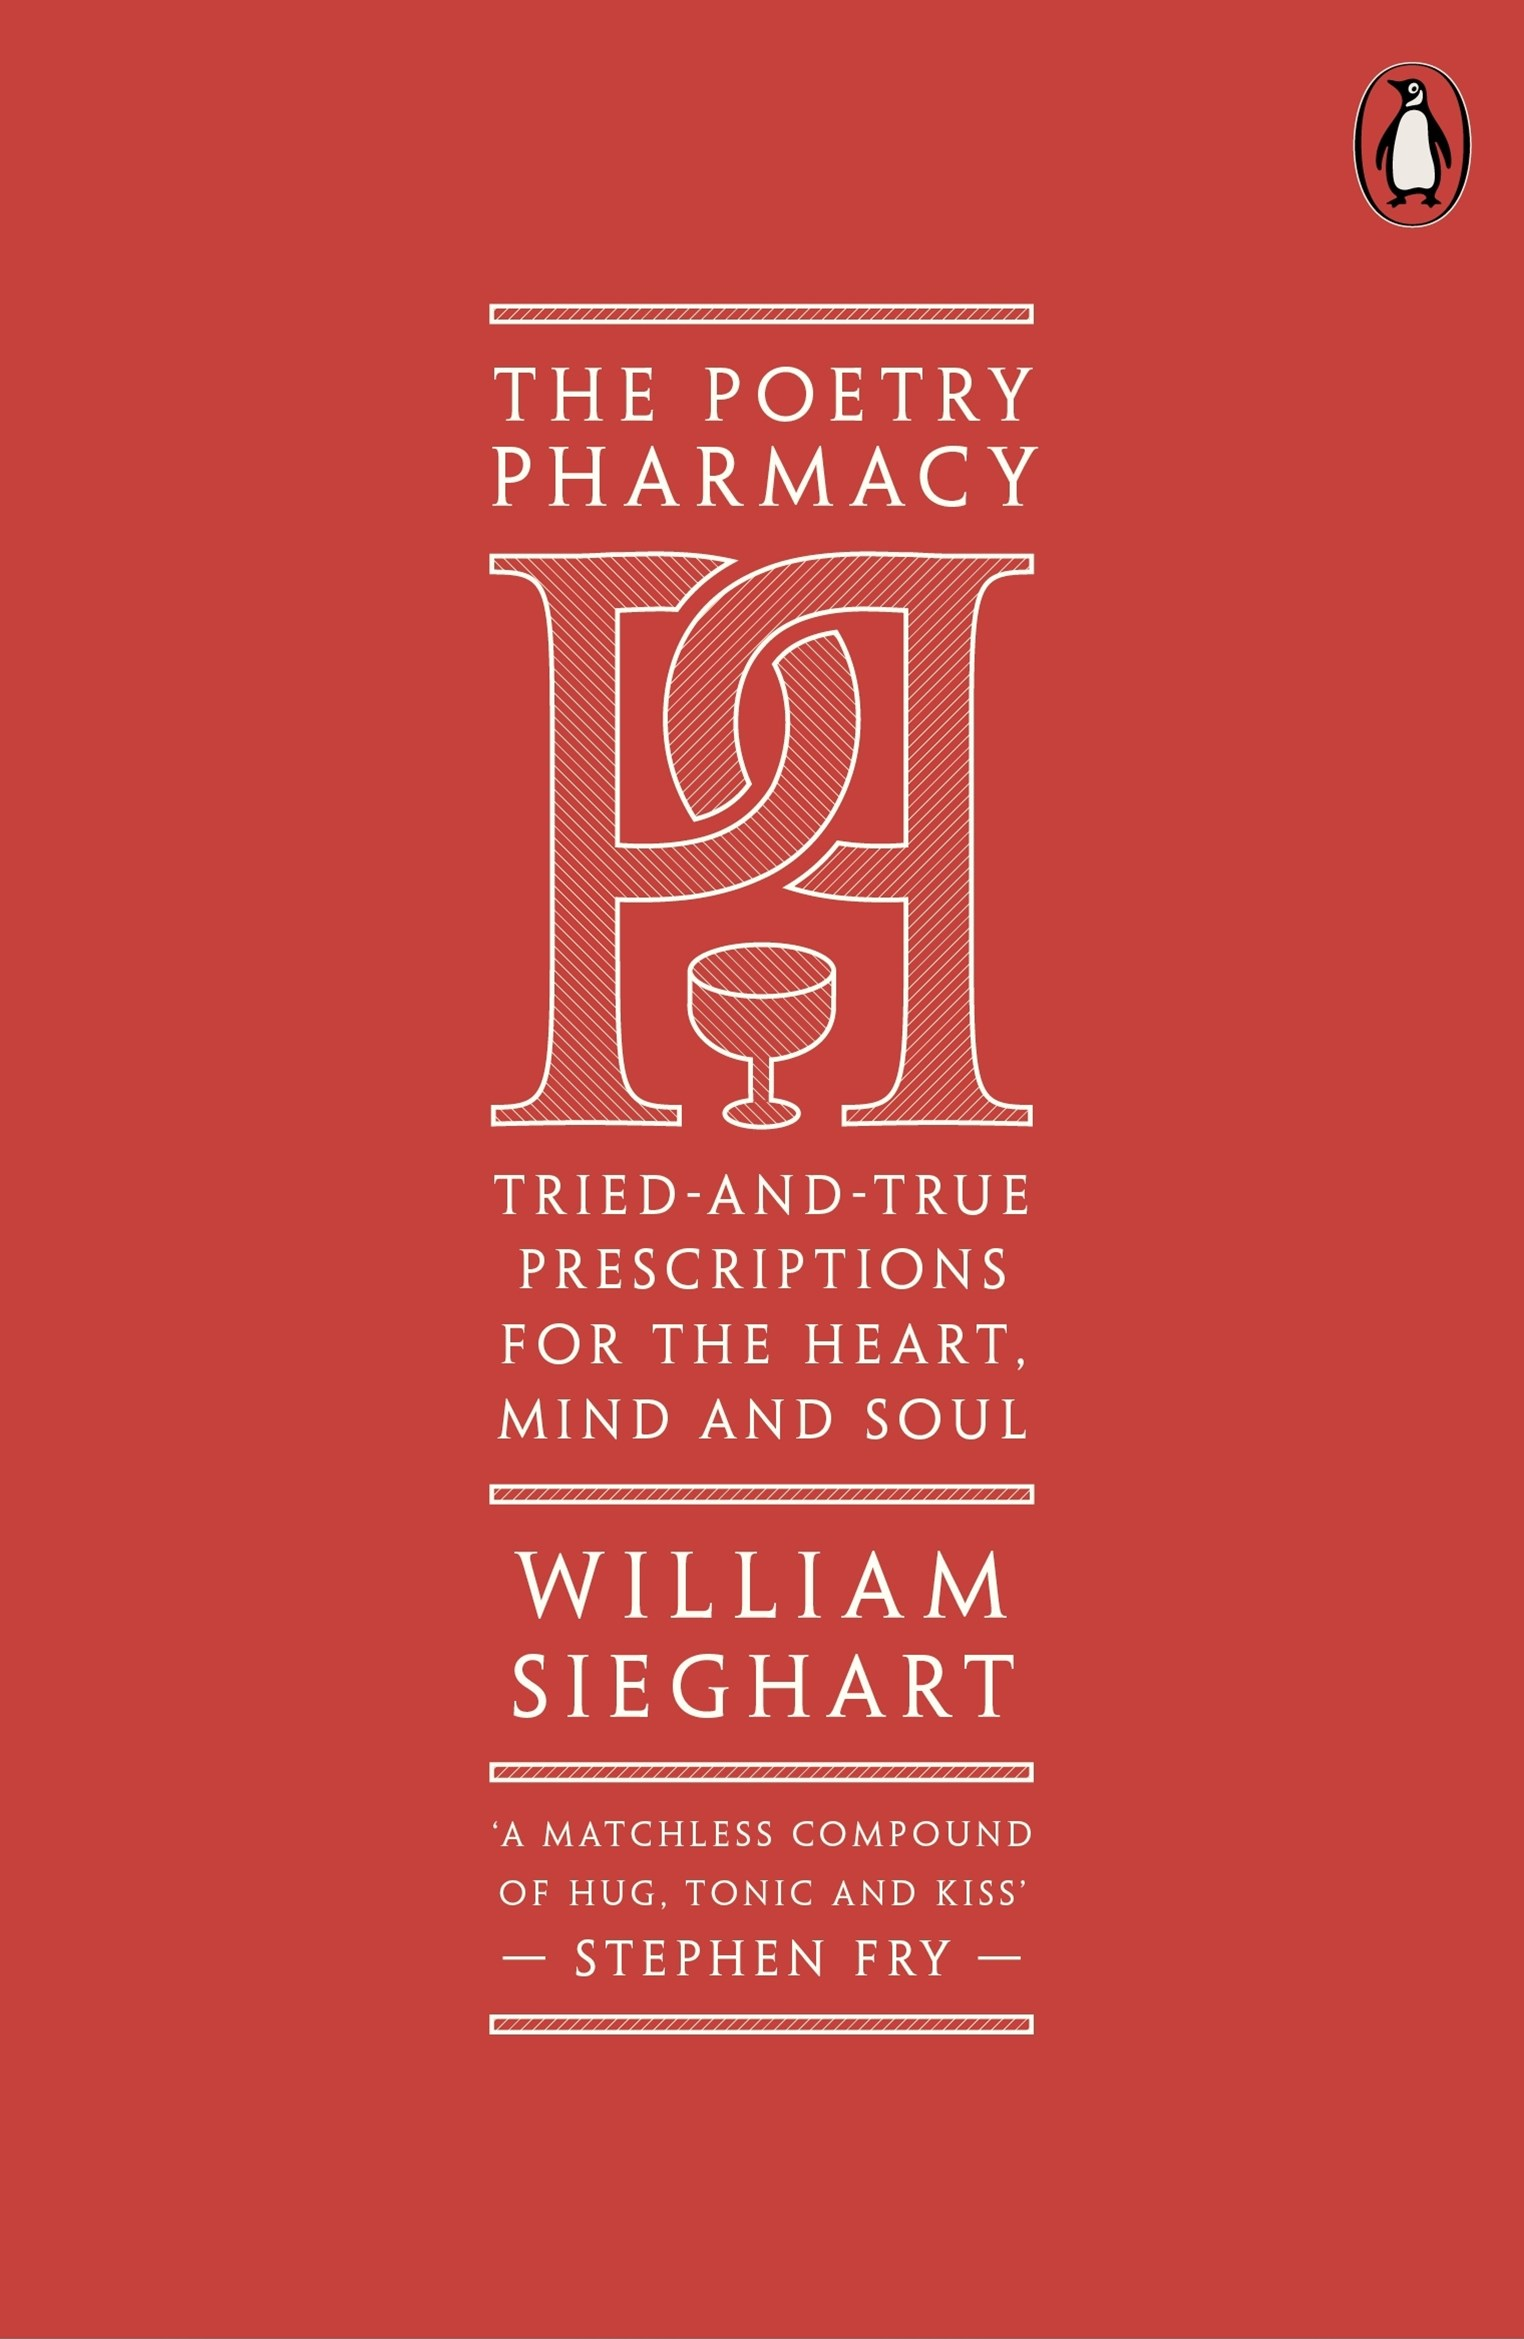 Poetry Pharmacy: Tried-and-True Prescriptions for the Heart, Mind and Soul